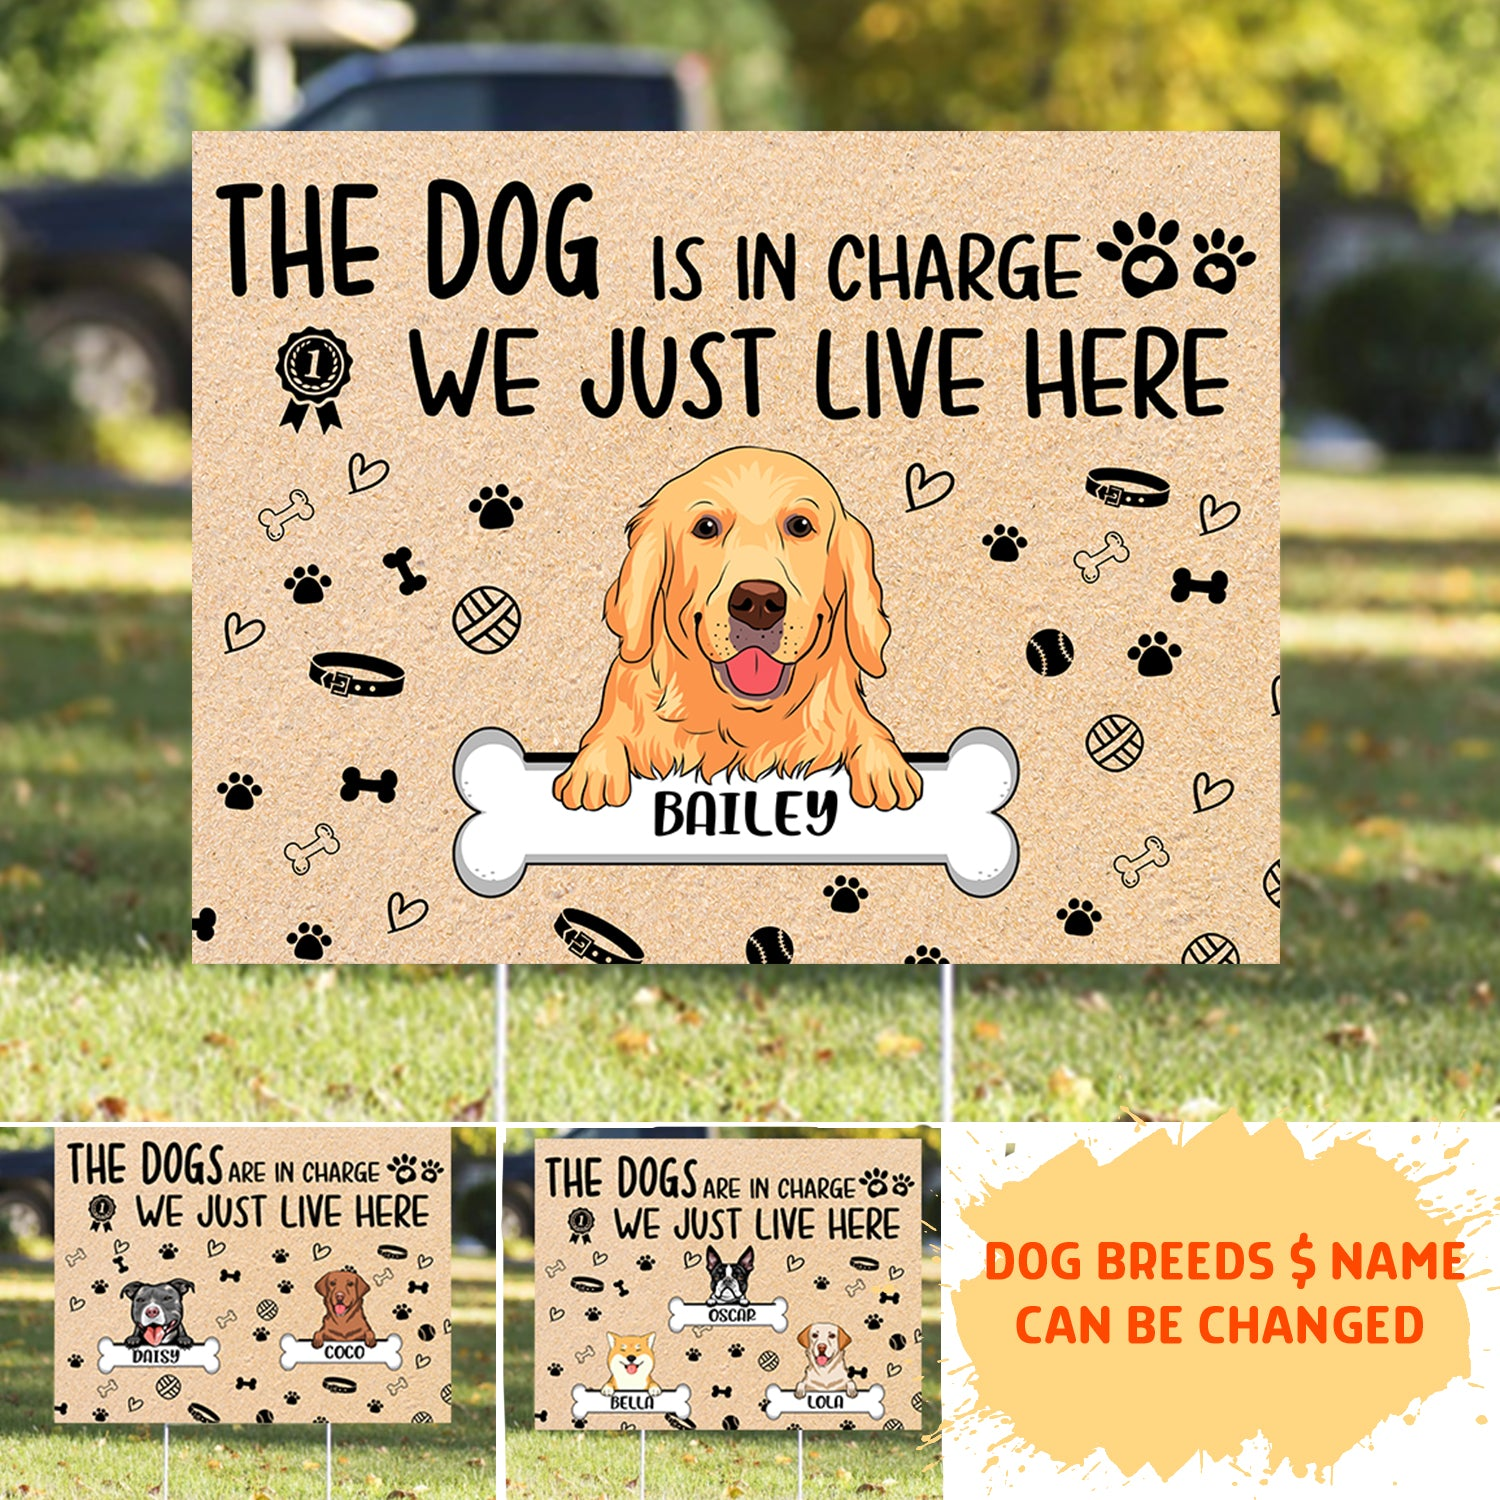 The dog is in charge - Personalized custom yard sign